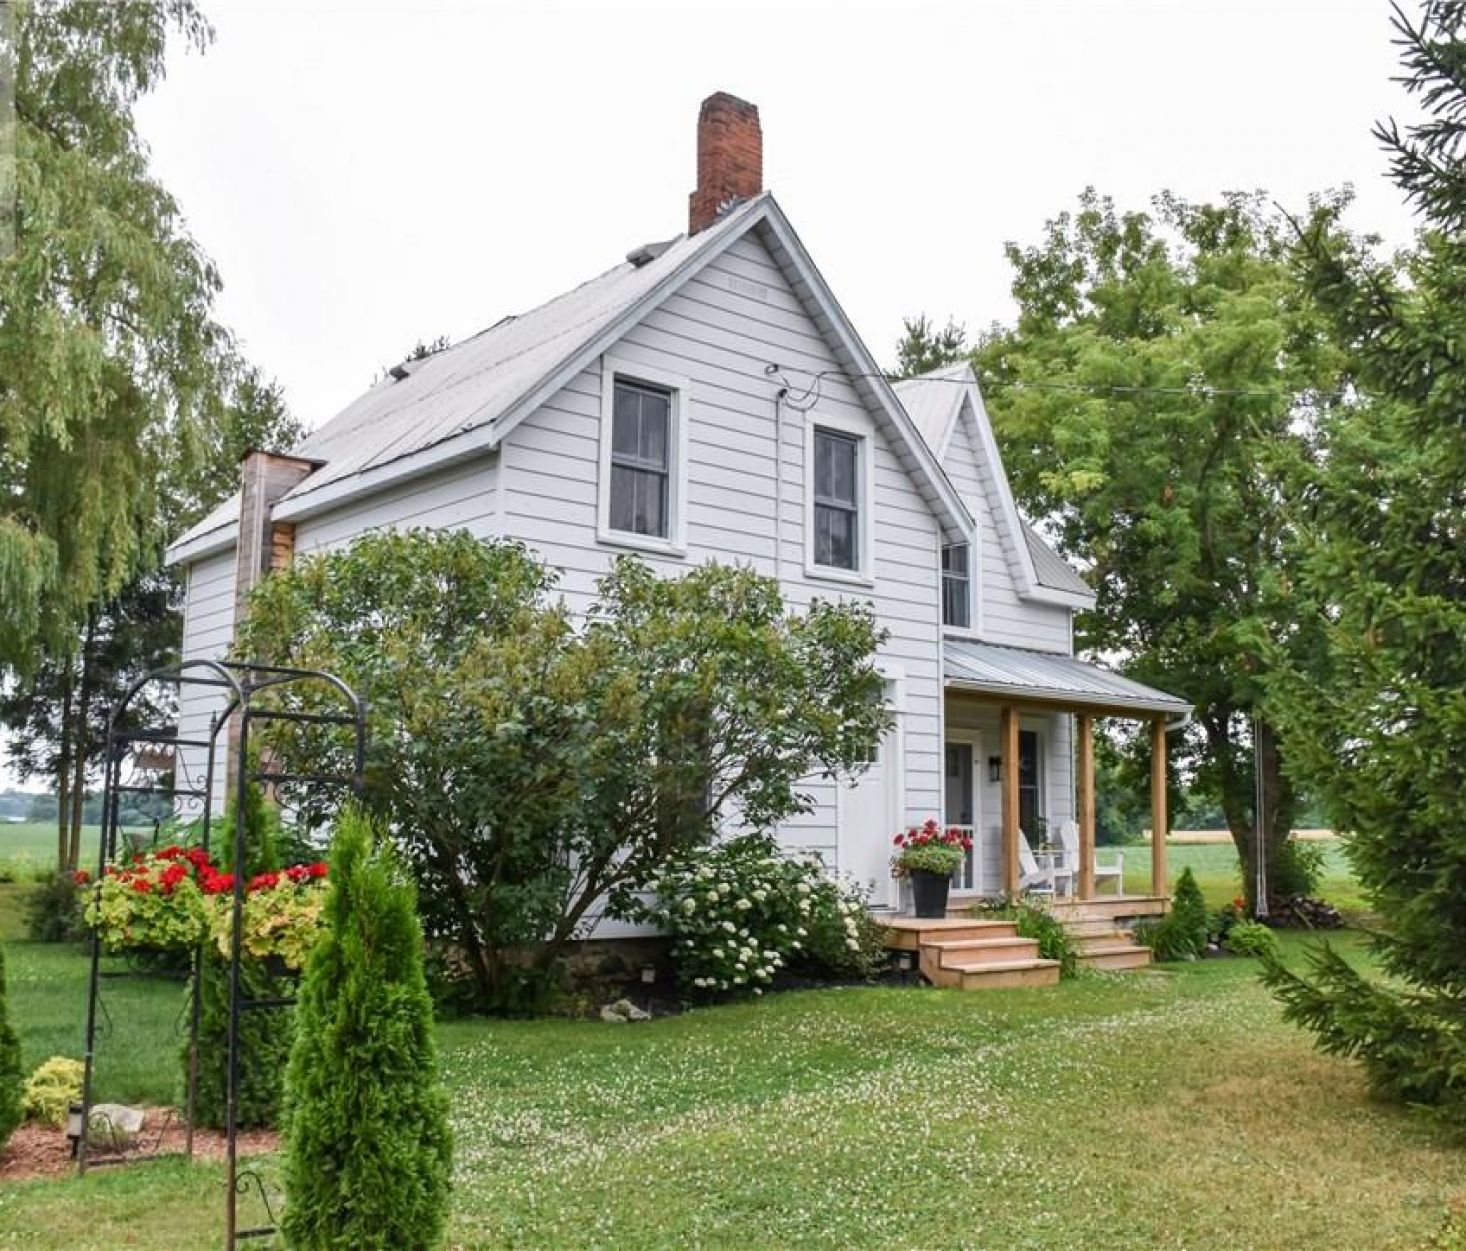 301 COUNTY ROAD 11 ROAD, Prince Edward County****SOLD****